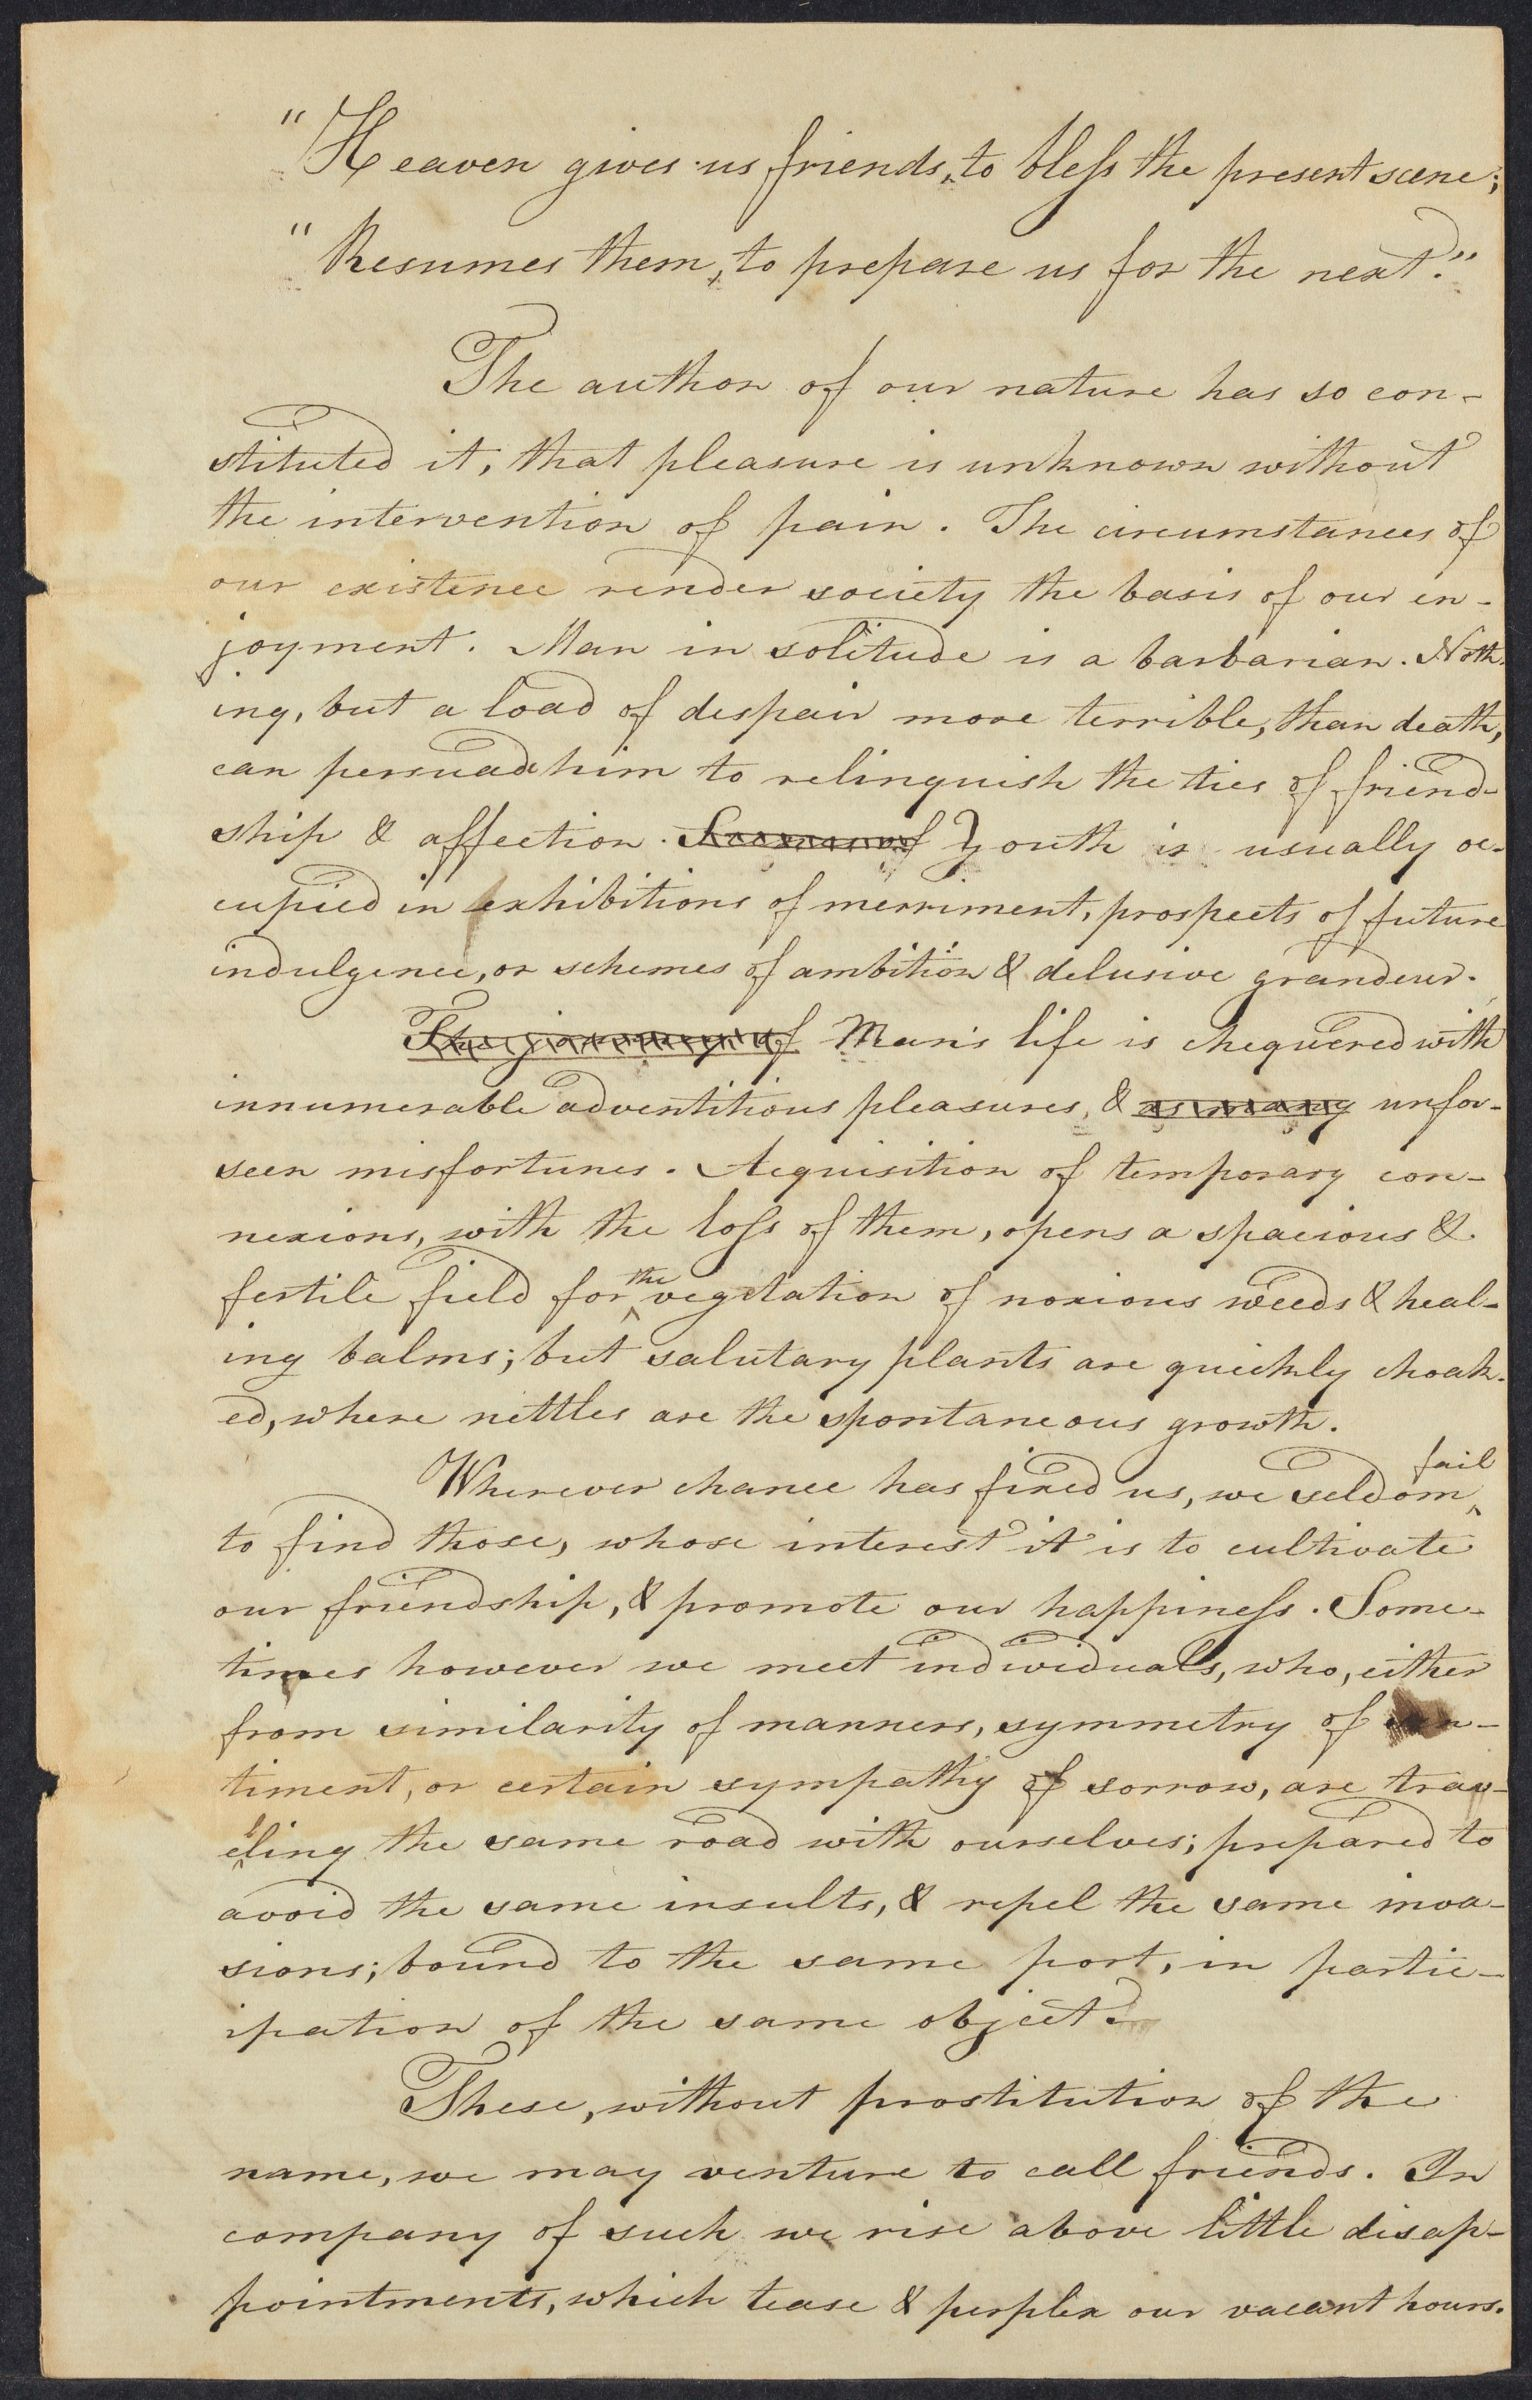 Student essay composed by Thomas Mason, 1796